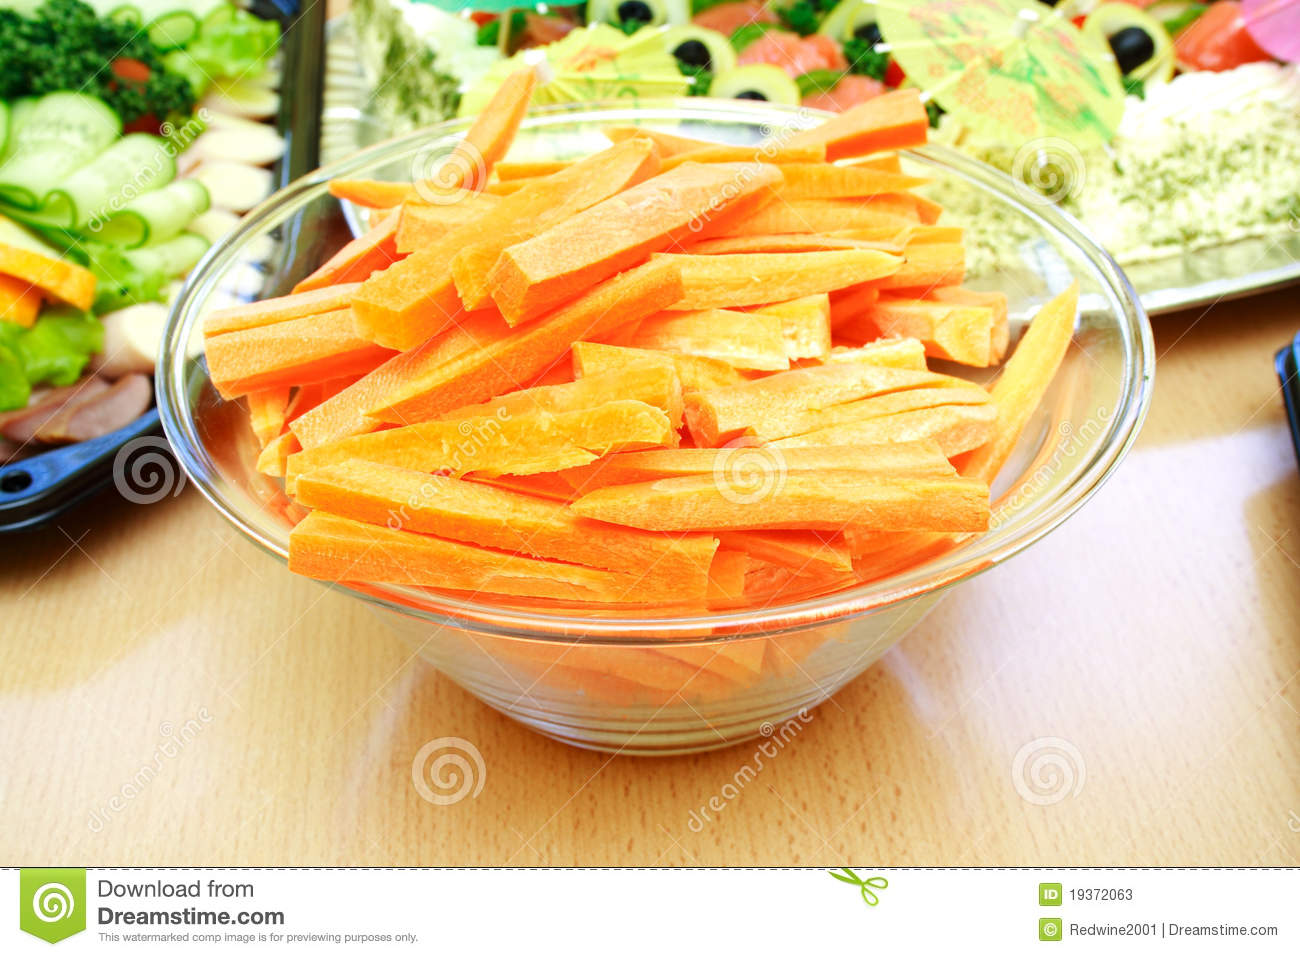 how to keep sliced carrots fresh